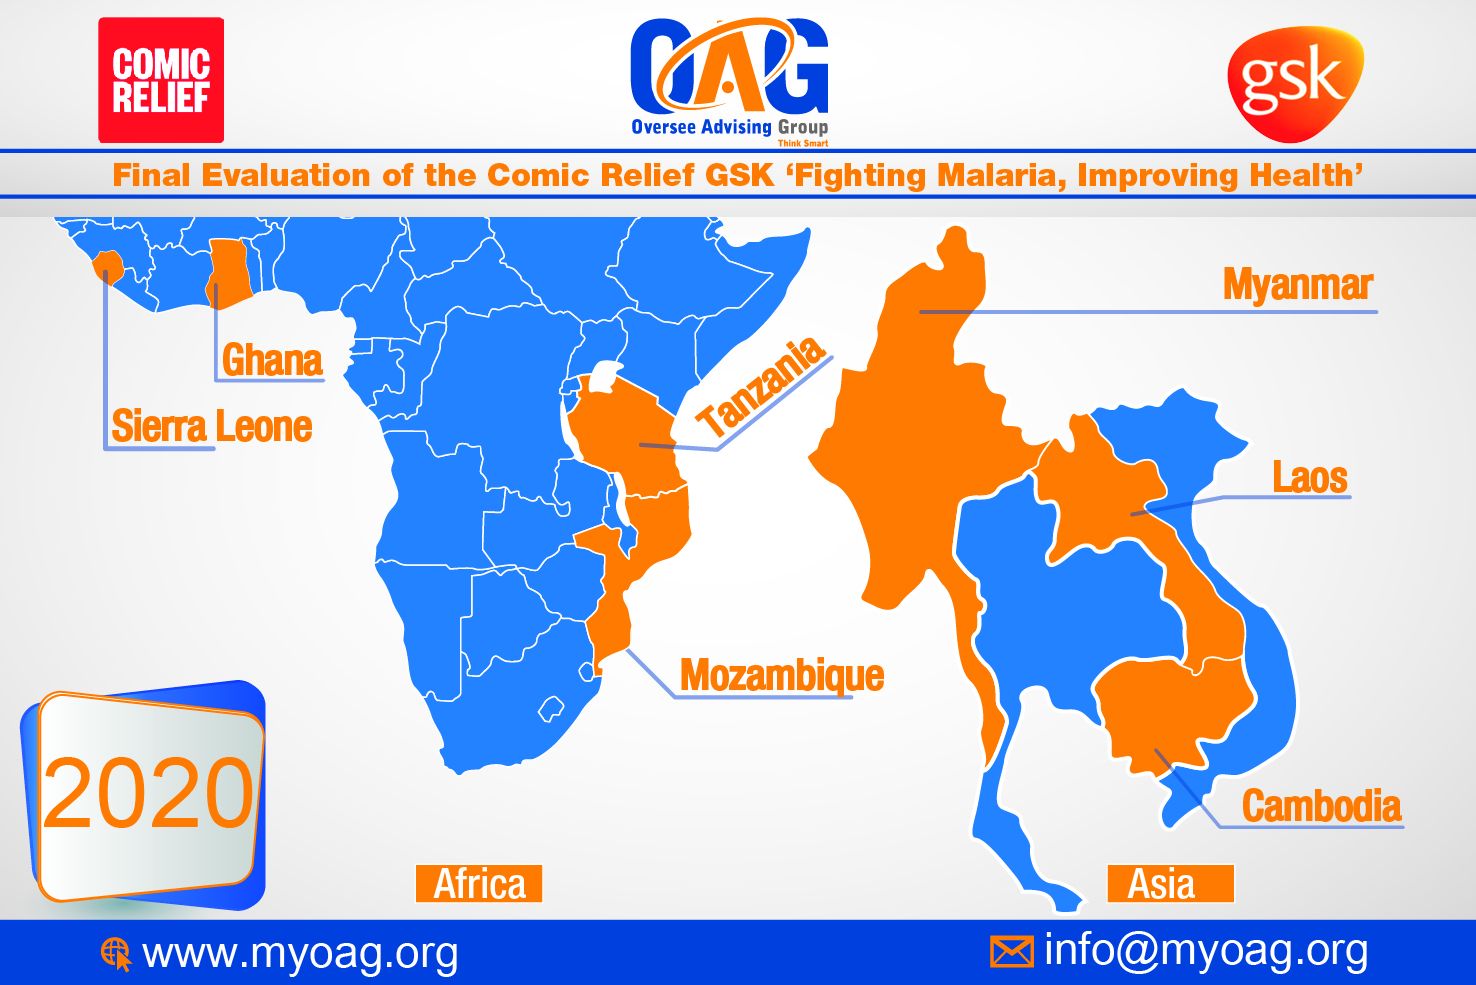 OAG has been selected to conduct the Final Evaluation of the Comic Relief GSK 'Fighting Malaria, Improving Health'